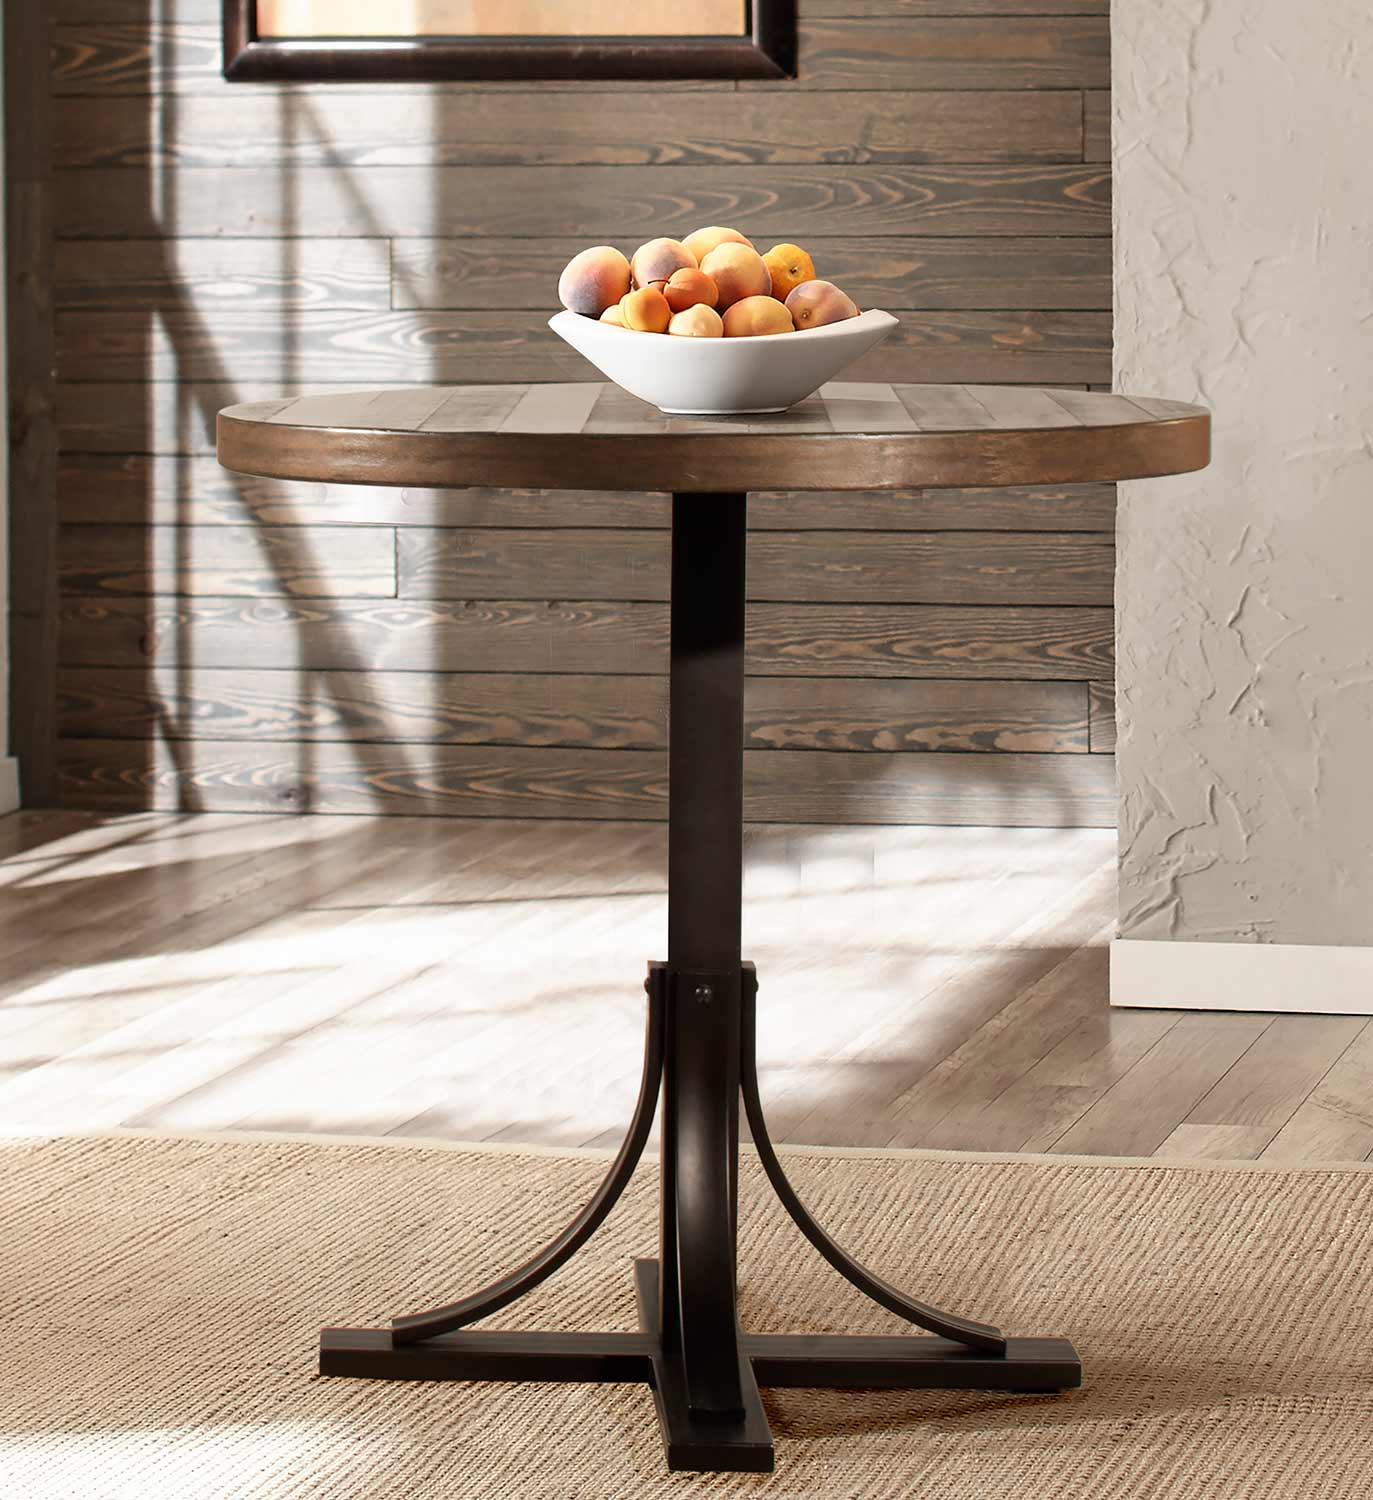 Hillsdale Jennings Round Counter Height Dining Table - Walnut Wood/Brown Metal